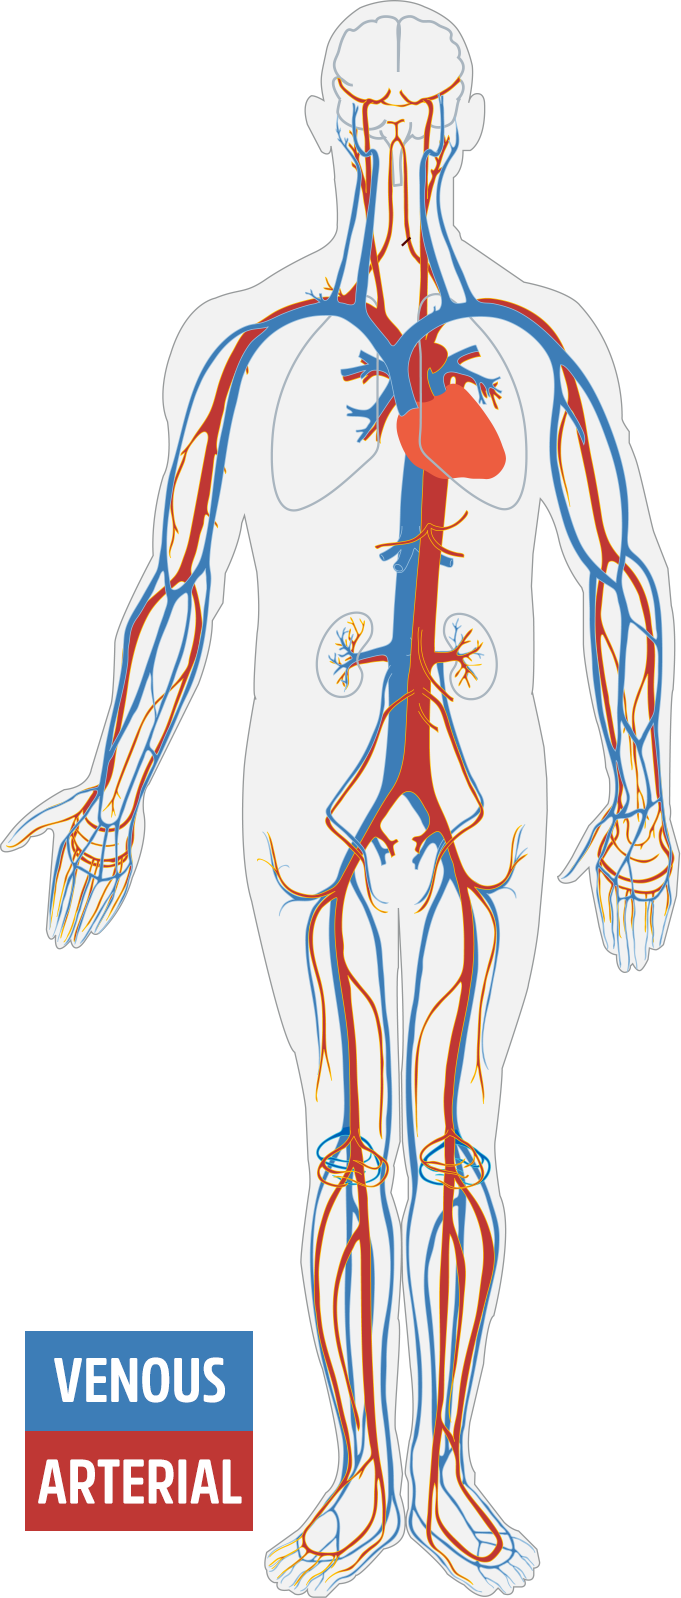 A diagram of the vascular system